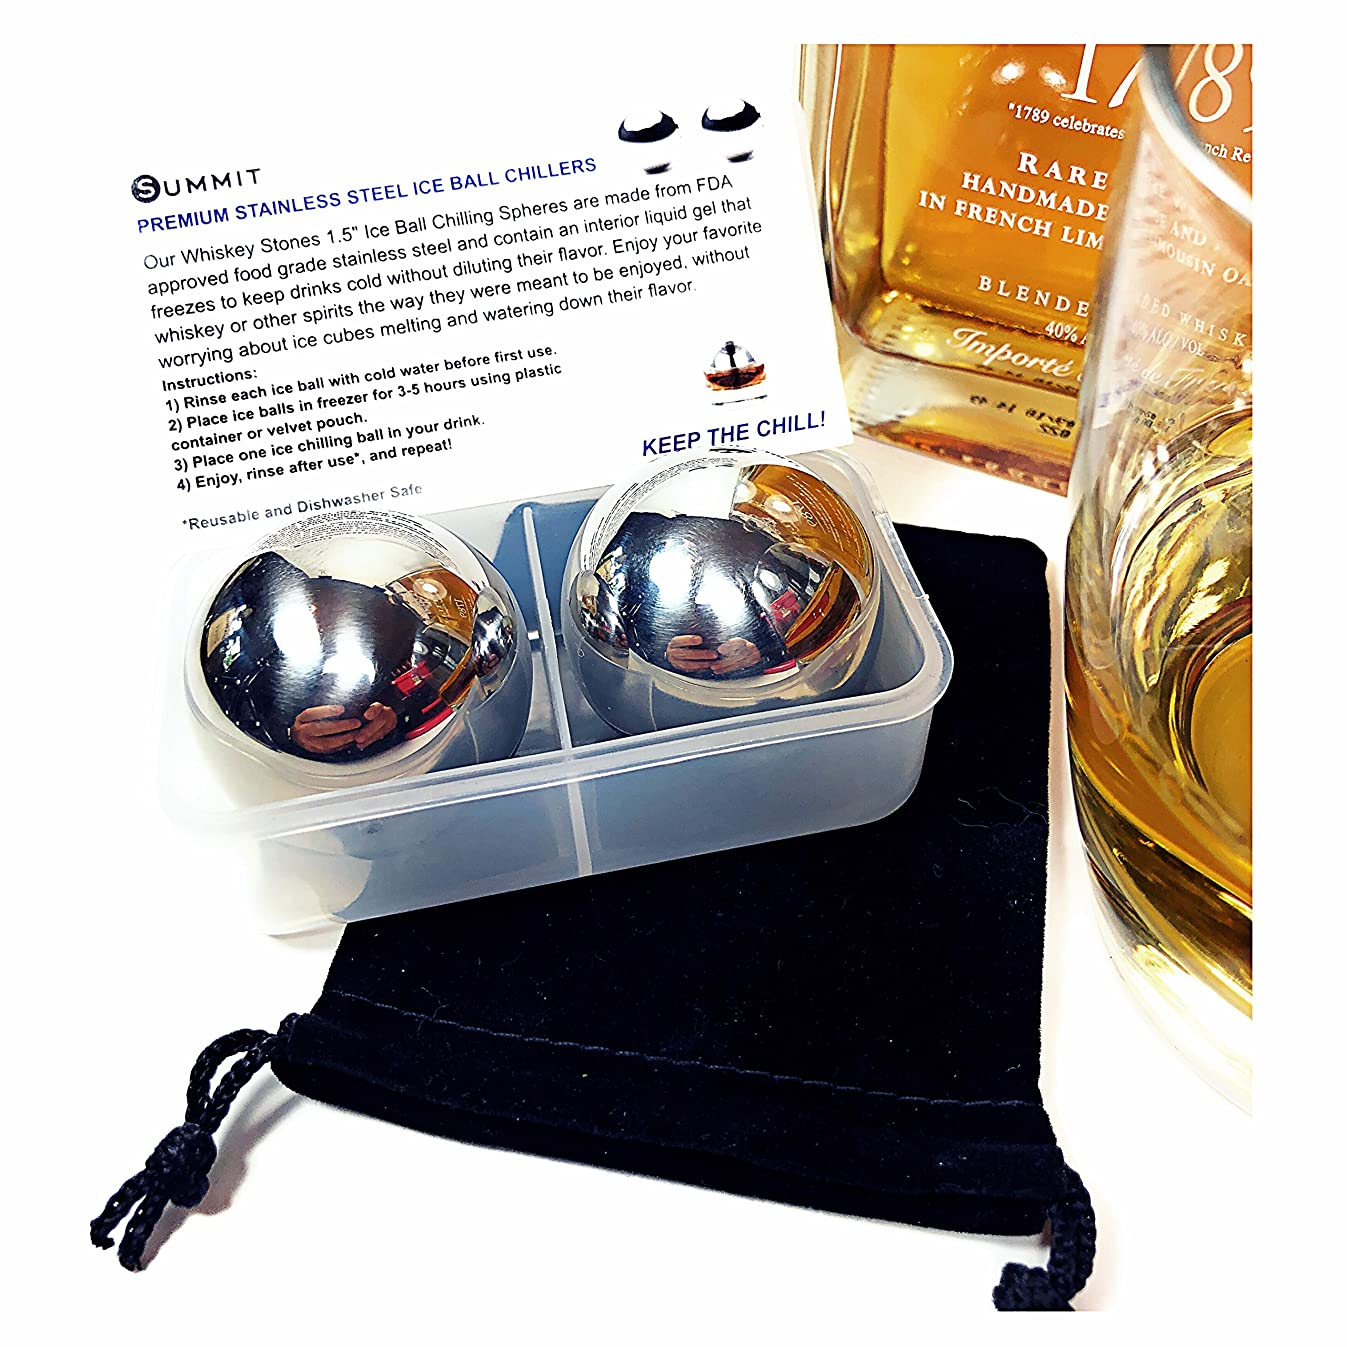 Whiskey Stainless Steel Balls Drink Chillers Gift Set of 2 Large Ice Coolers, Velvet Bag, Freezer Container & Product Info Card | Retain Full Flavor & Chill | Groomsmen Men's Father's Day Gift